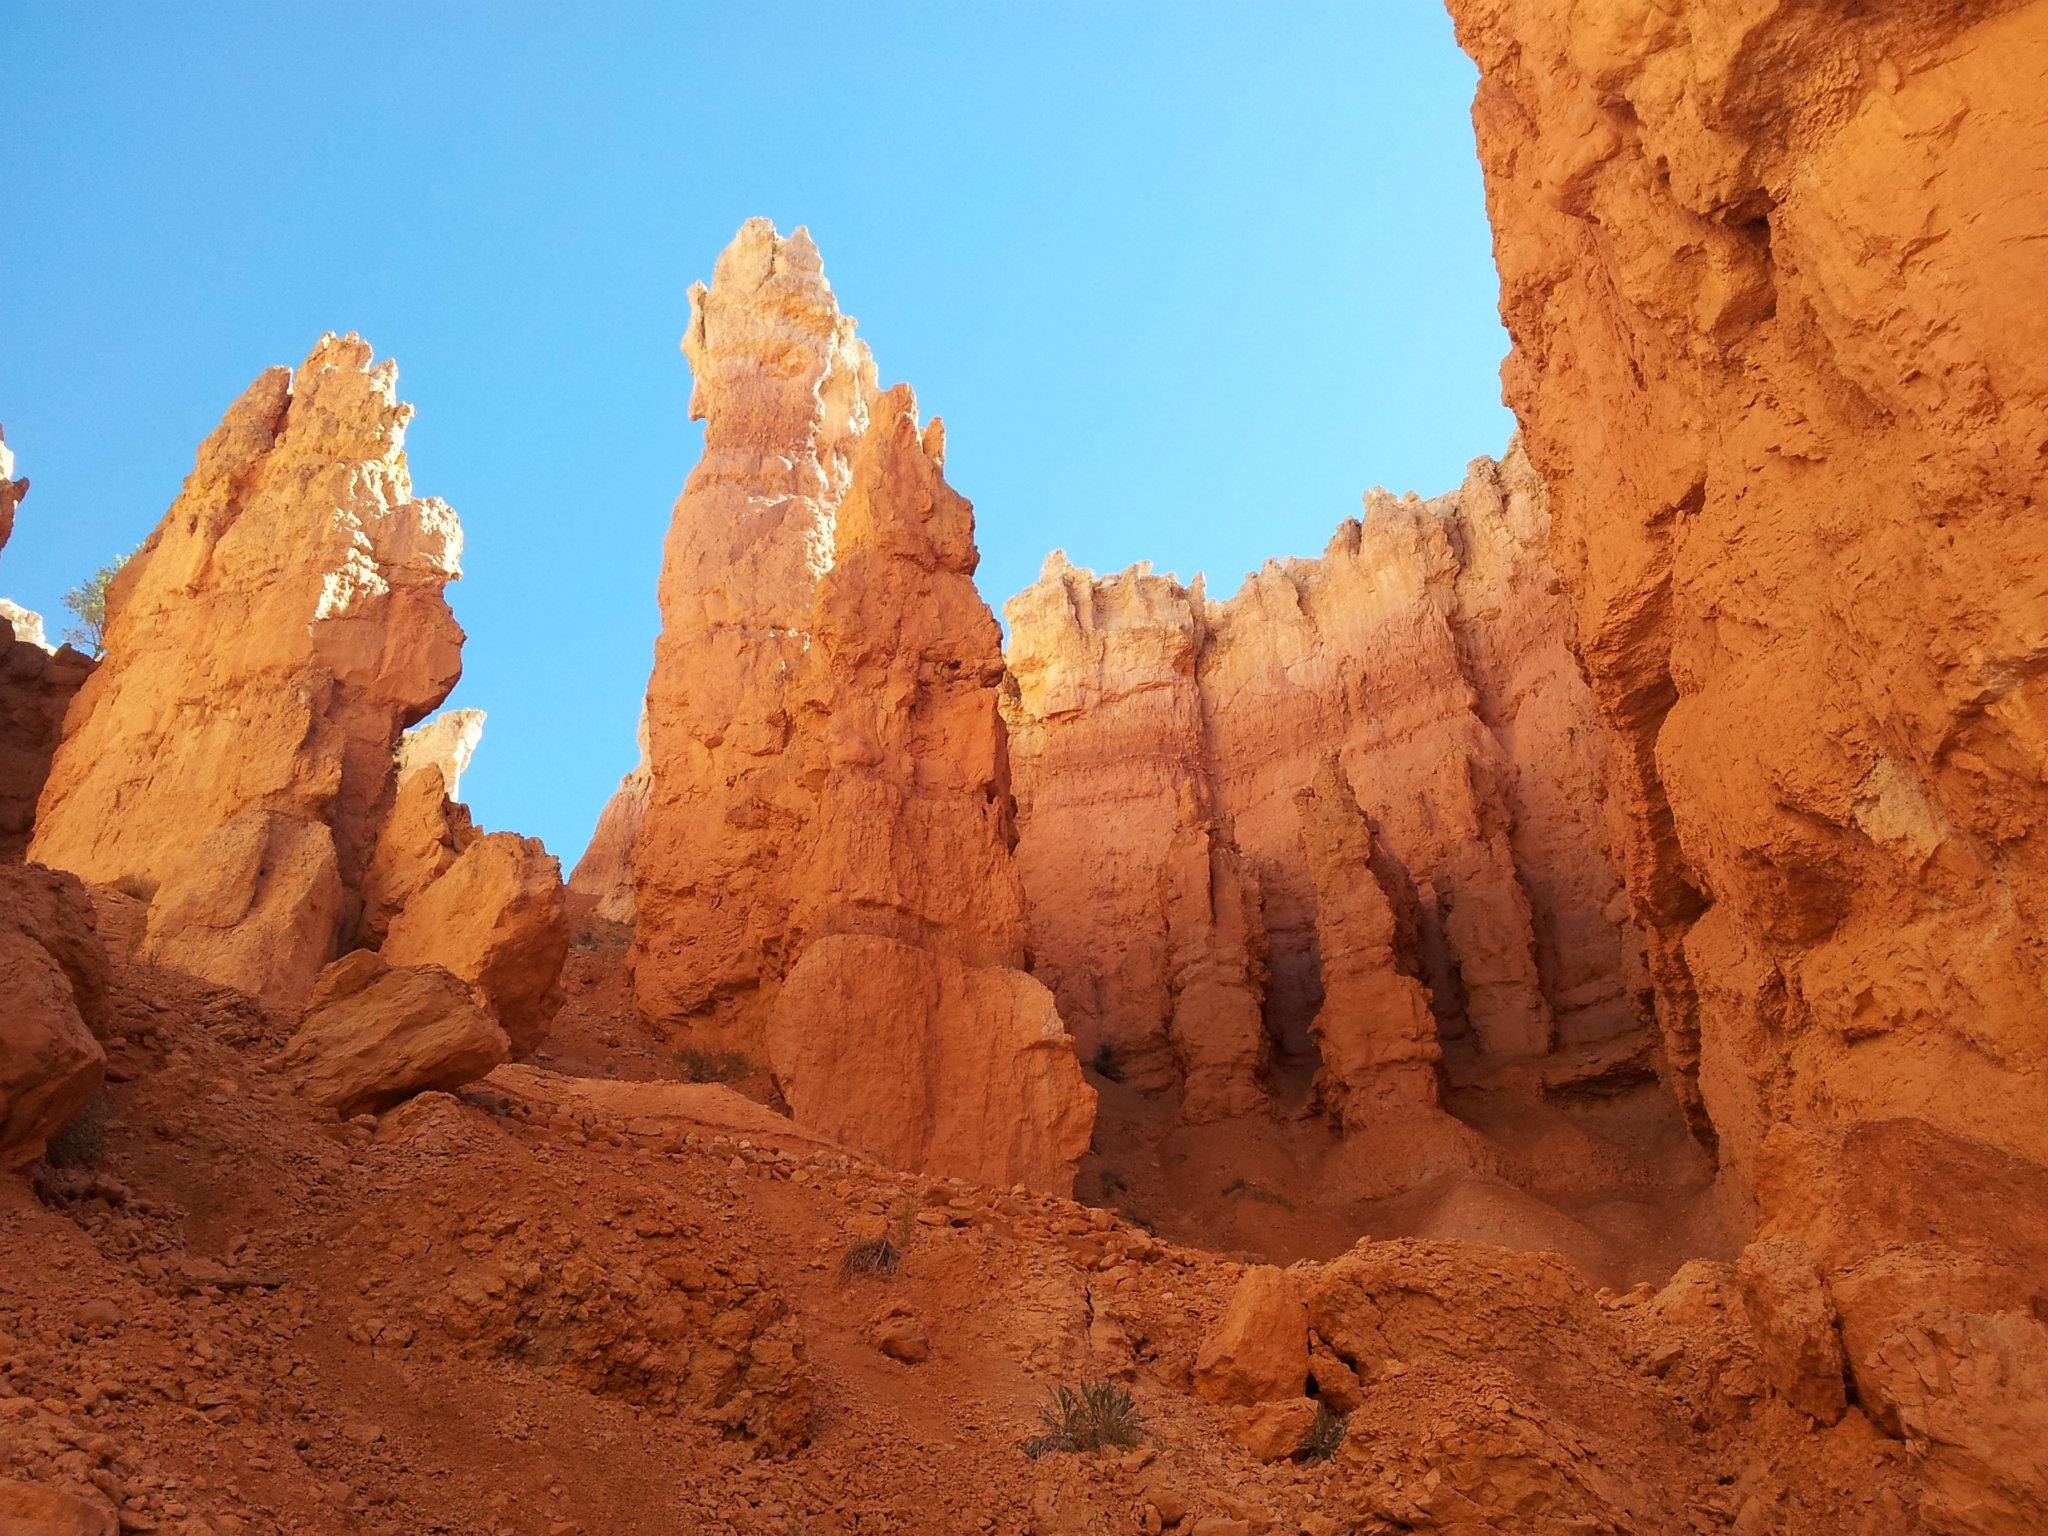 As you descend, the tall structures called hoodoos rise above